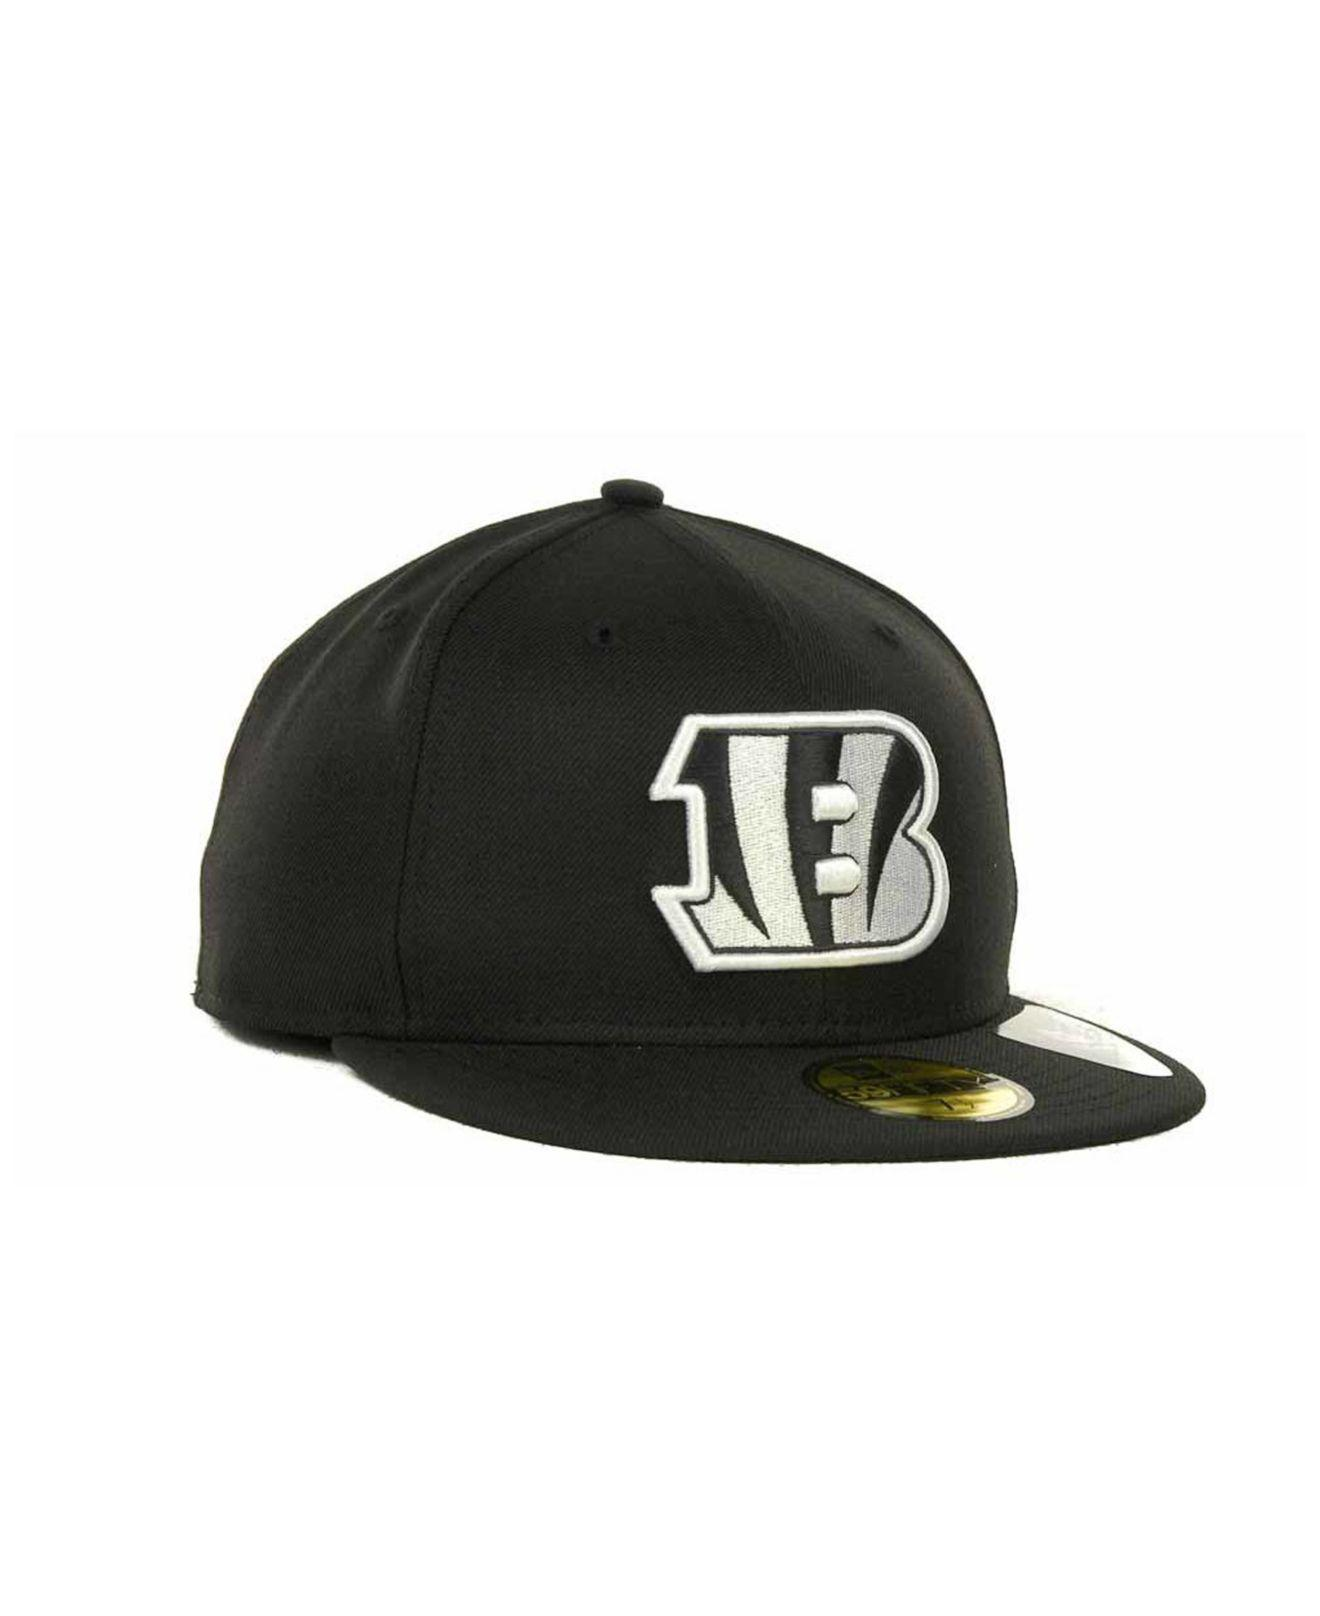 finest selection c7c00 eec20 Lyst - KTZ Cincinnati Bengals Black And White 59fifty Fitted Cap in Black  for Men - Save 8%